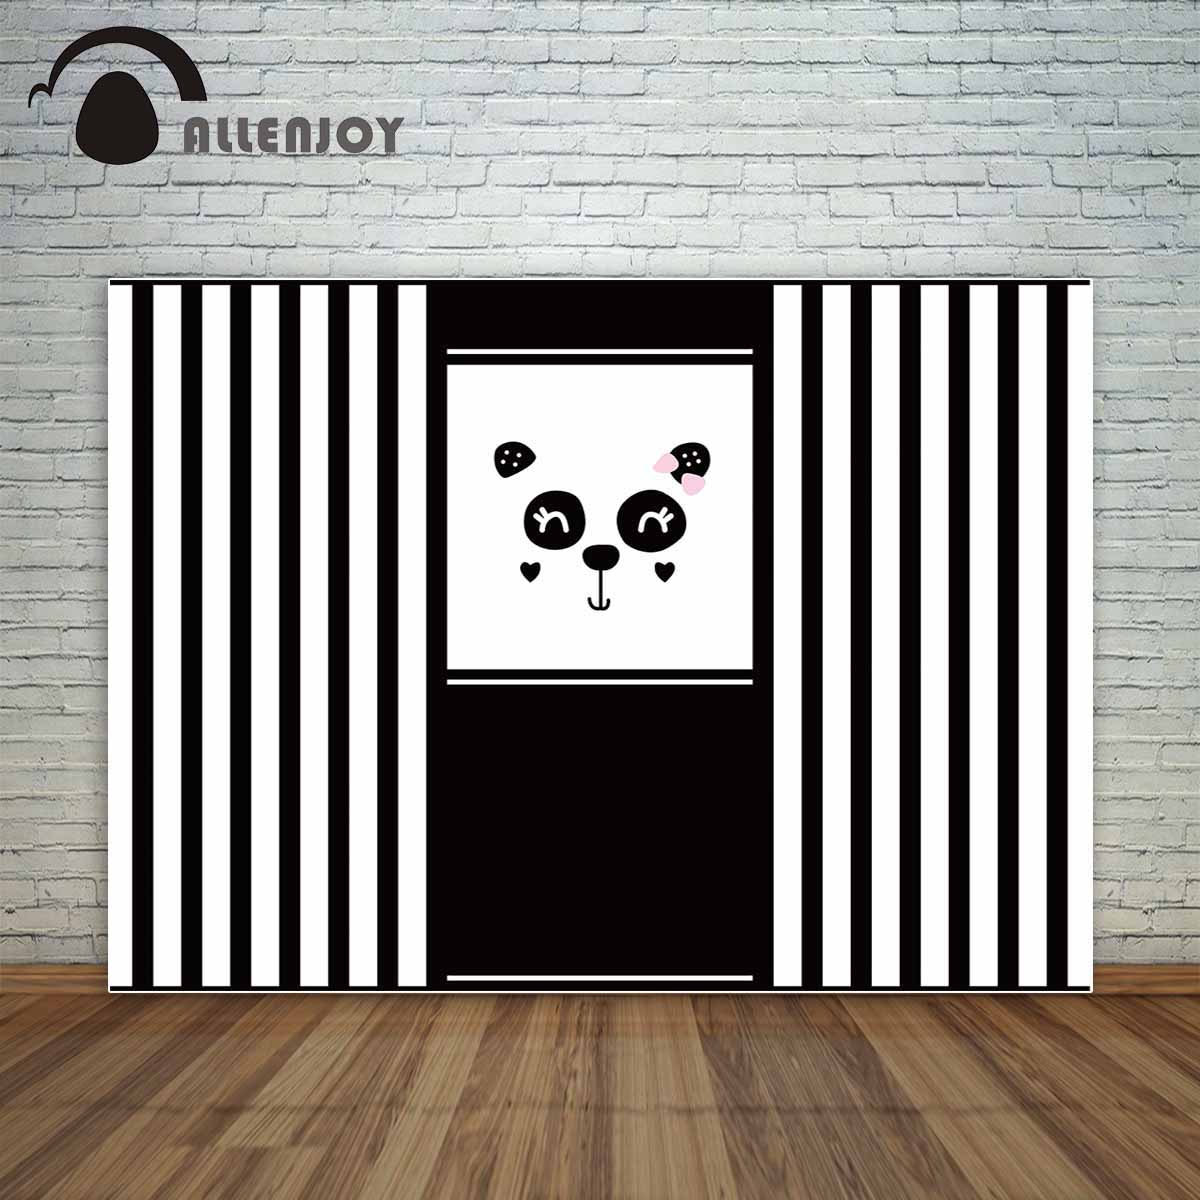 Allenjoy Cute Panda Backdrop Black And White Stripes Birthday Decorations For Home Background Vinyl